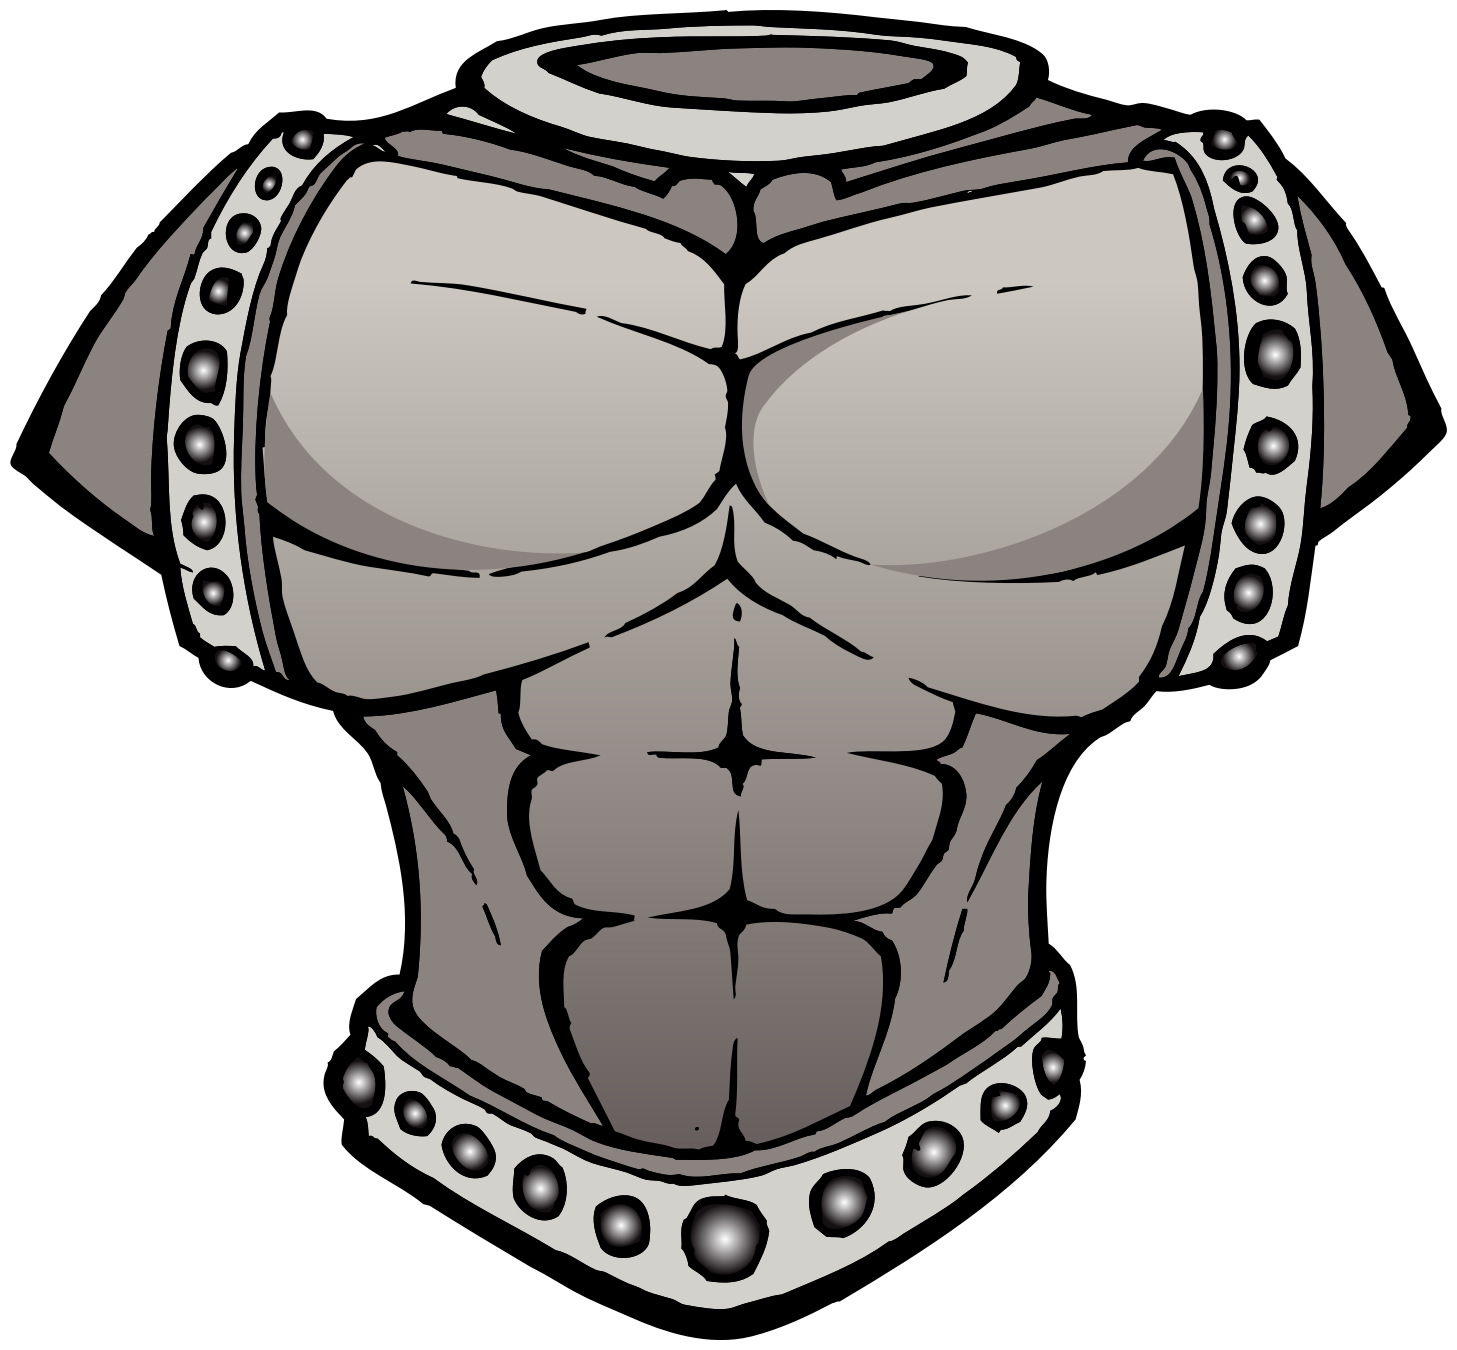 Aromour. Free armor cliparts download